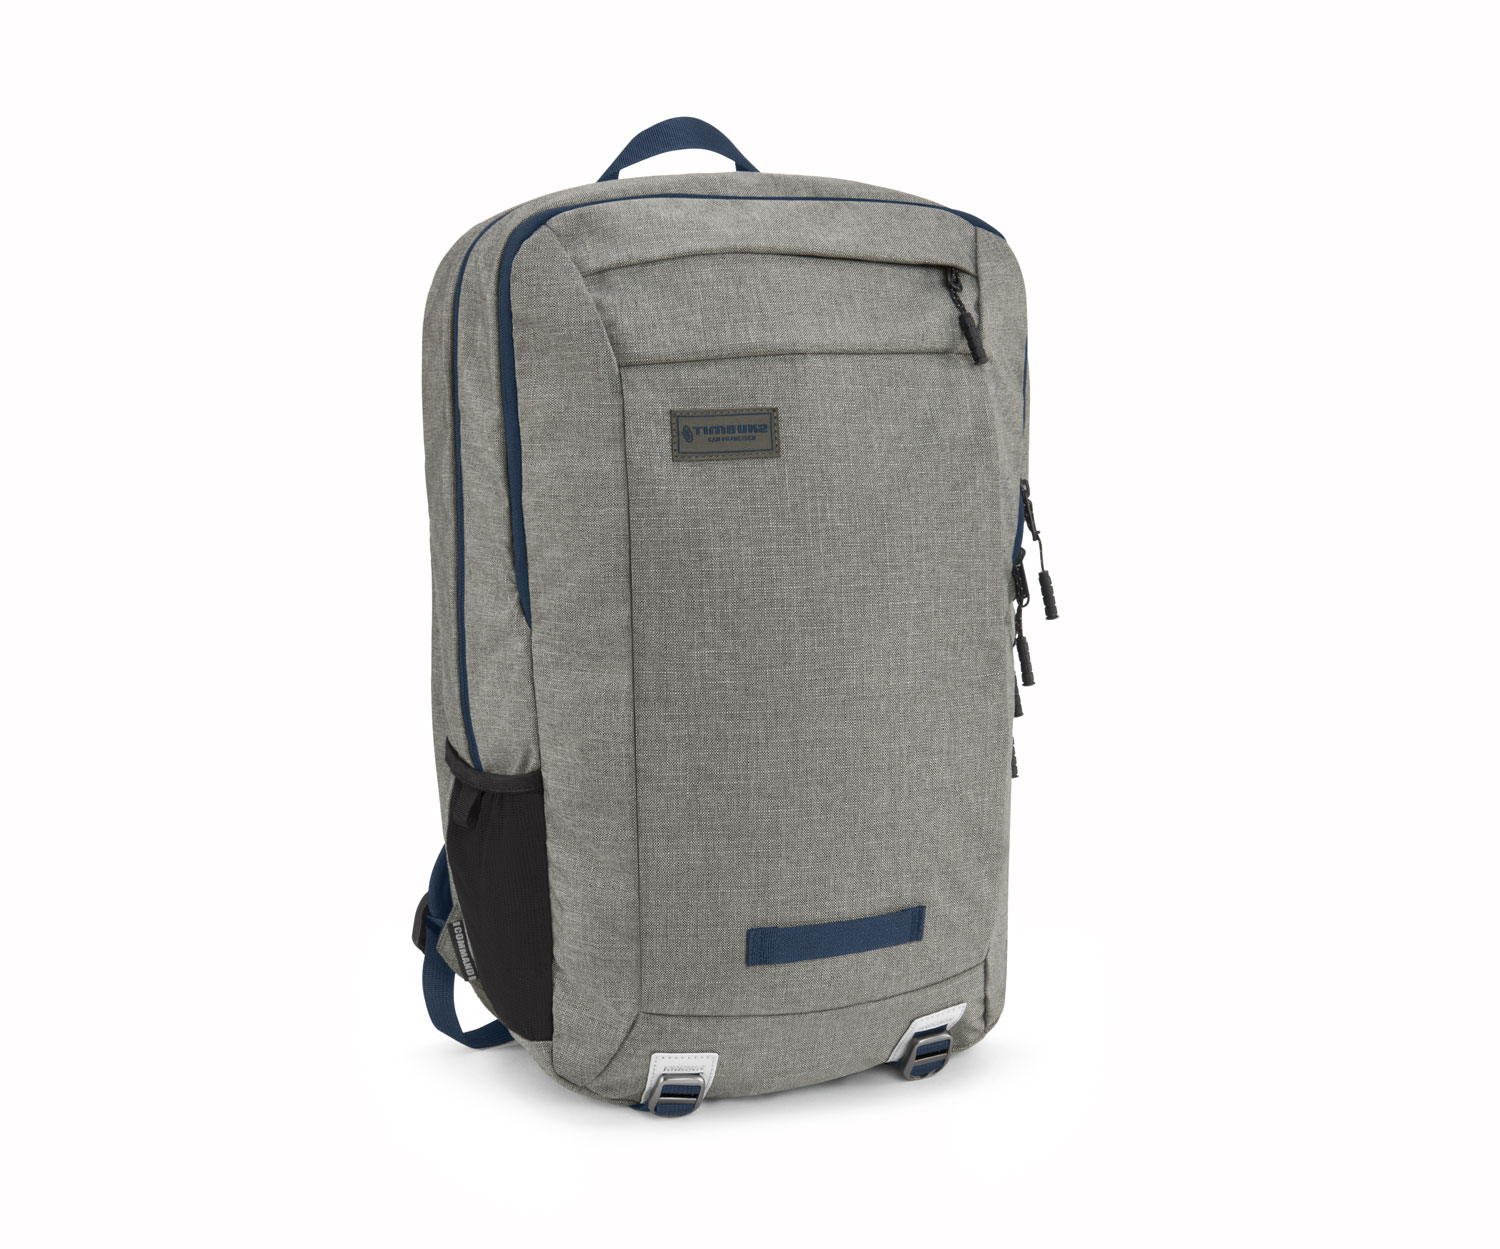 Timbuk 3 - Some Of The Best Of Timbuk 3 / Field Guide